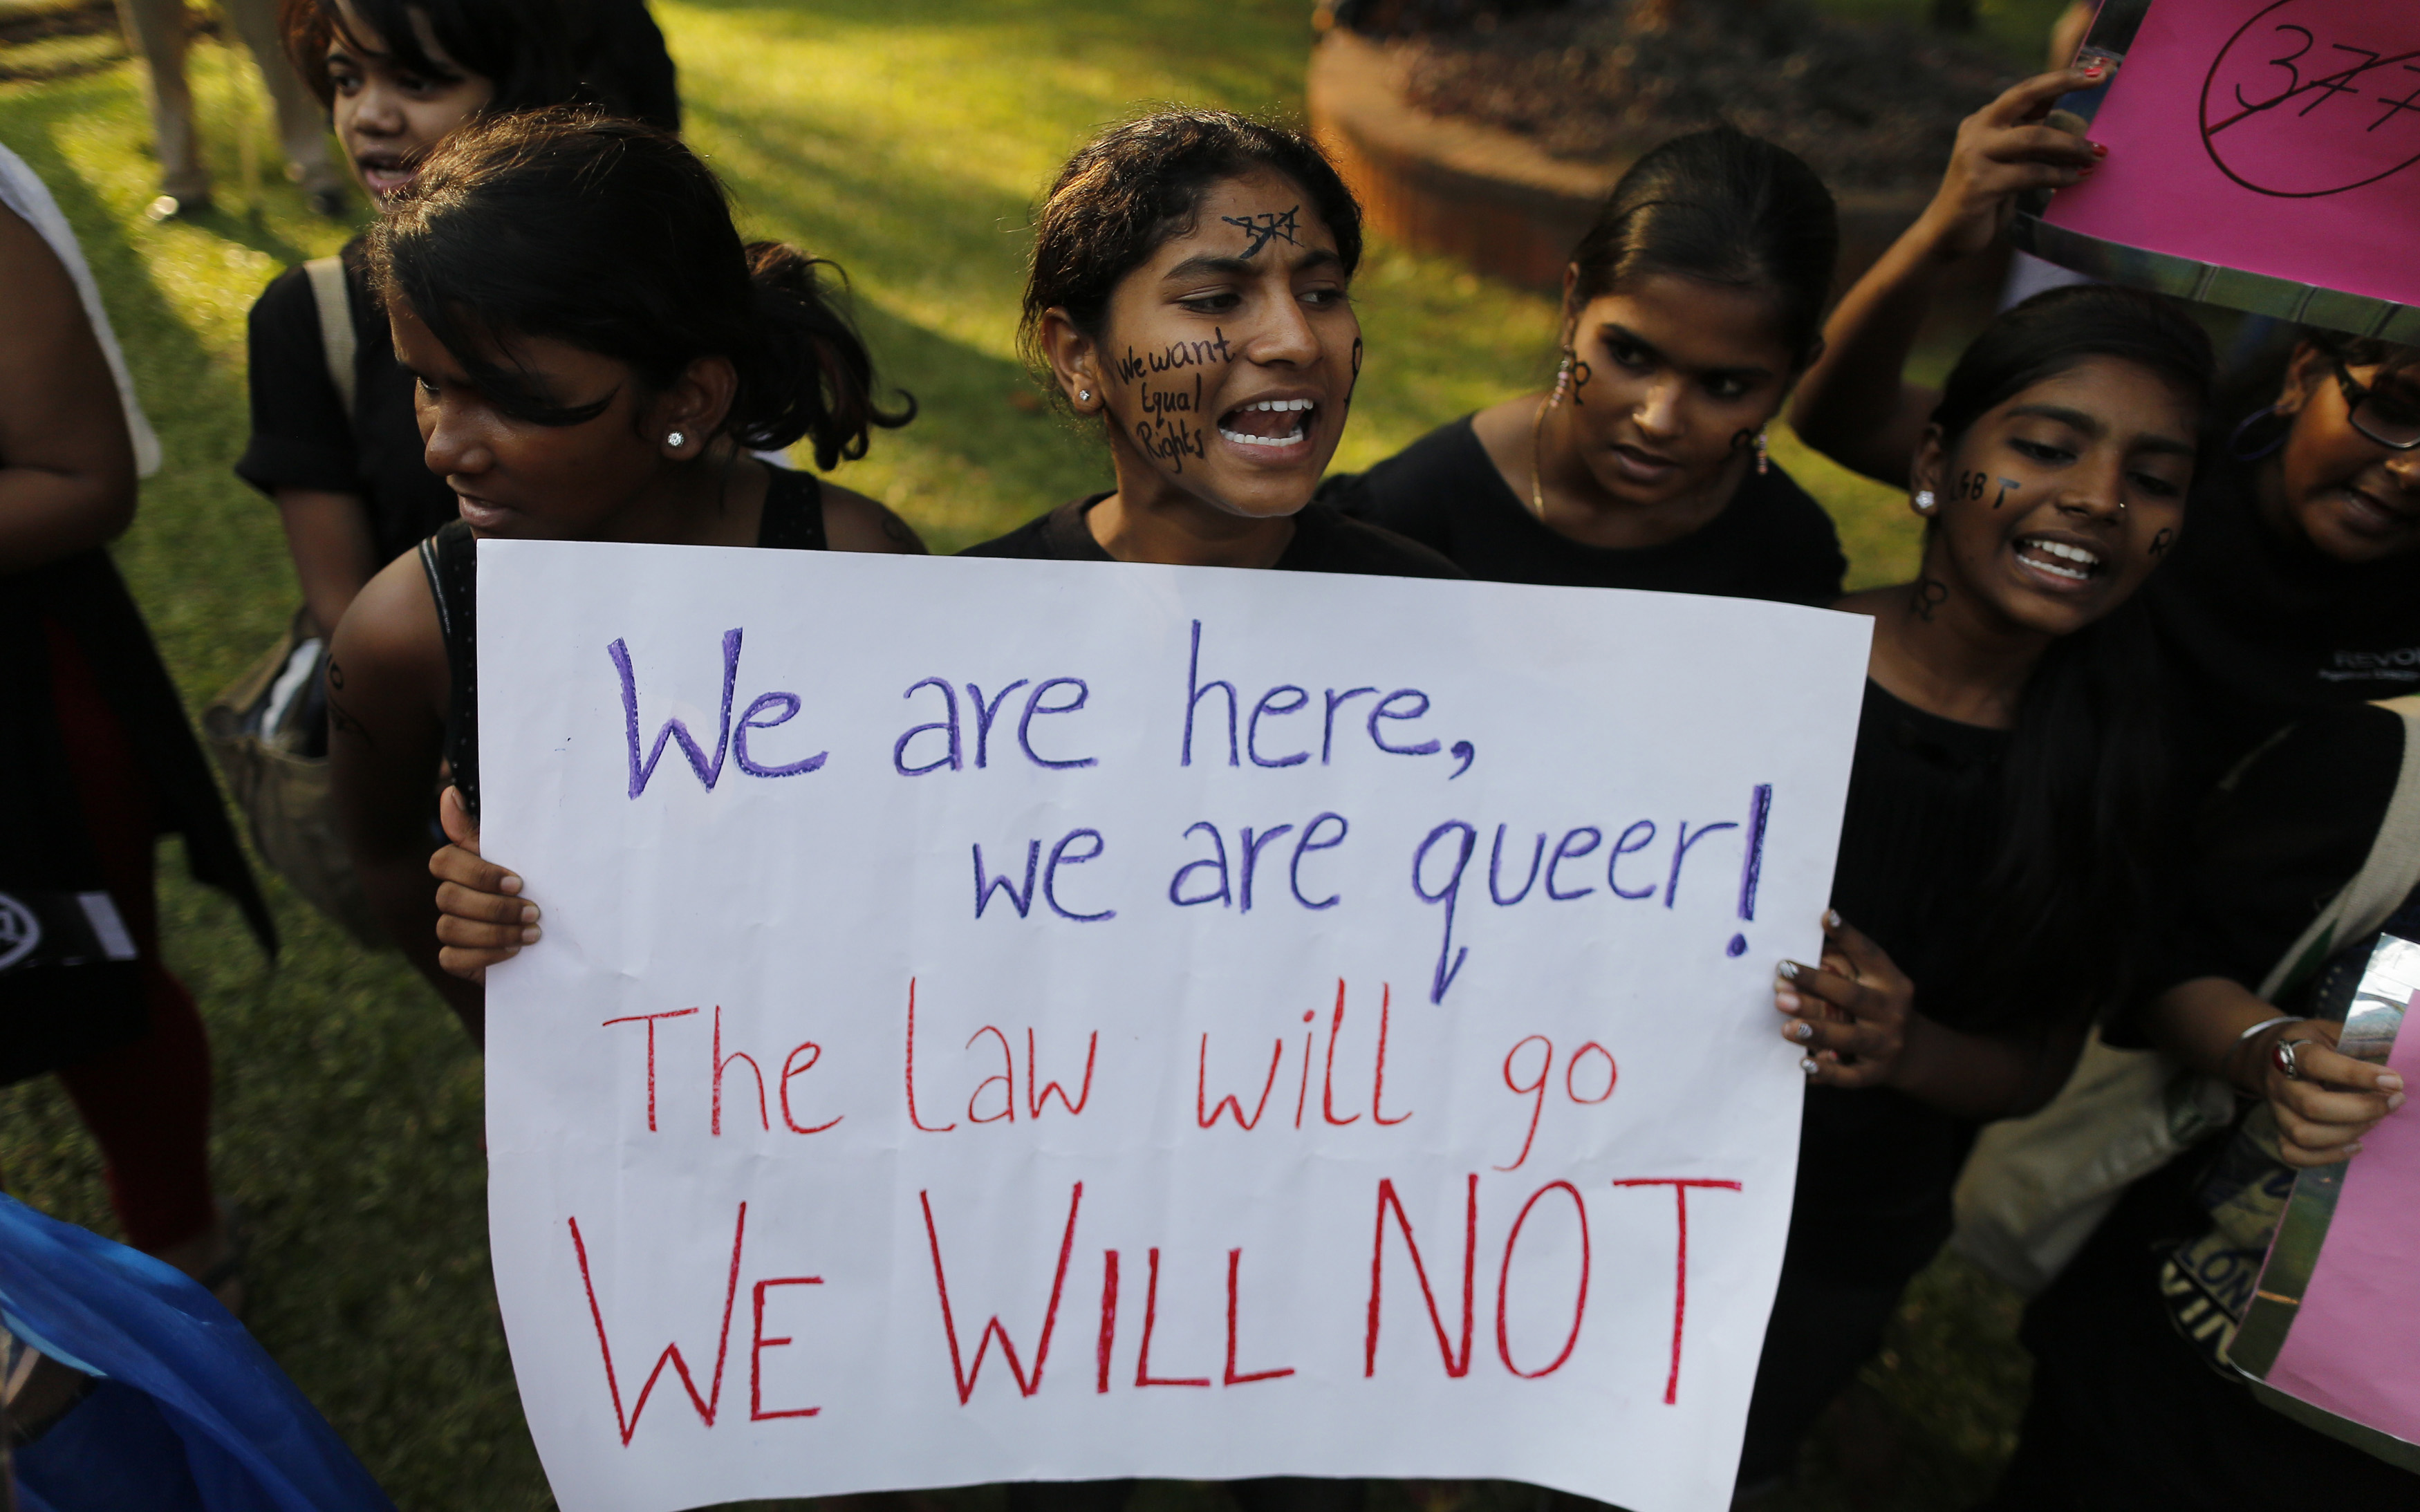 "Gay rights activists shout slogans during a protest against the verdict by the Supreme Court in Mumbai December 15, 2013. India's Supreme Court on Wednesday reinstated a ban on gay sex in the world's largest democracy, following a four-year period of decriminalisation that had helped bring homosexuality into the open in the socially conservative country. In 2009 the Delhi High Court ruled unconstitutional a section of the penal code dating back to 1860 that prohibits ""carnal intercourse against the order of nature with any man, woman or animal"" and lifted the ban for consenting adults. The Supreme Court threw out that decision, saying only parliament could change Section 377 of the penal code, widely interpreted to refer to homosexual sex. Violation of the law can be punished with up to 10 years in jail. REUTERS/Danish Siddiqui (INDIA - Tags: LAW SOCIETY) - RTX16JJD"